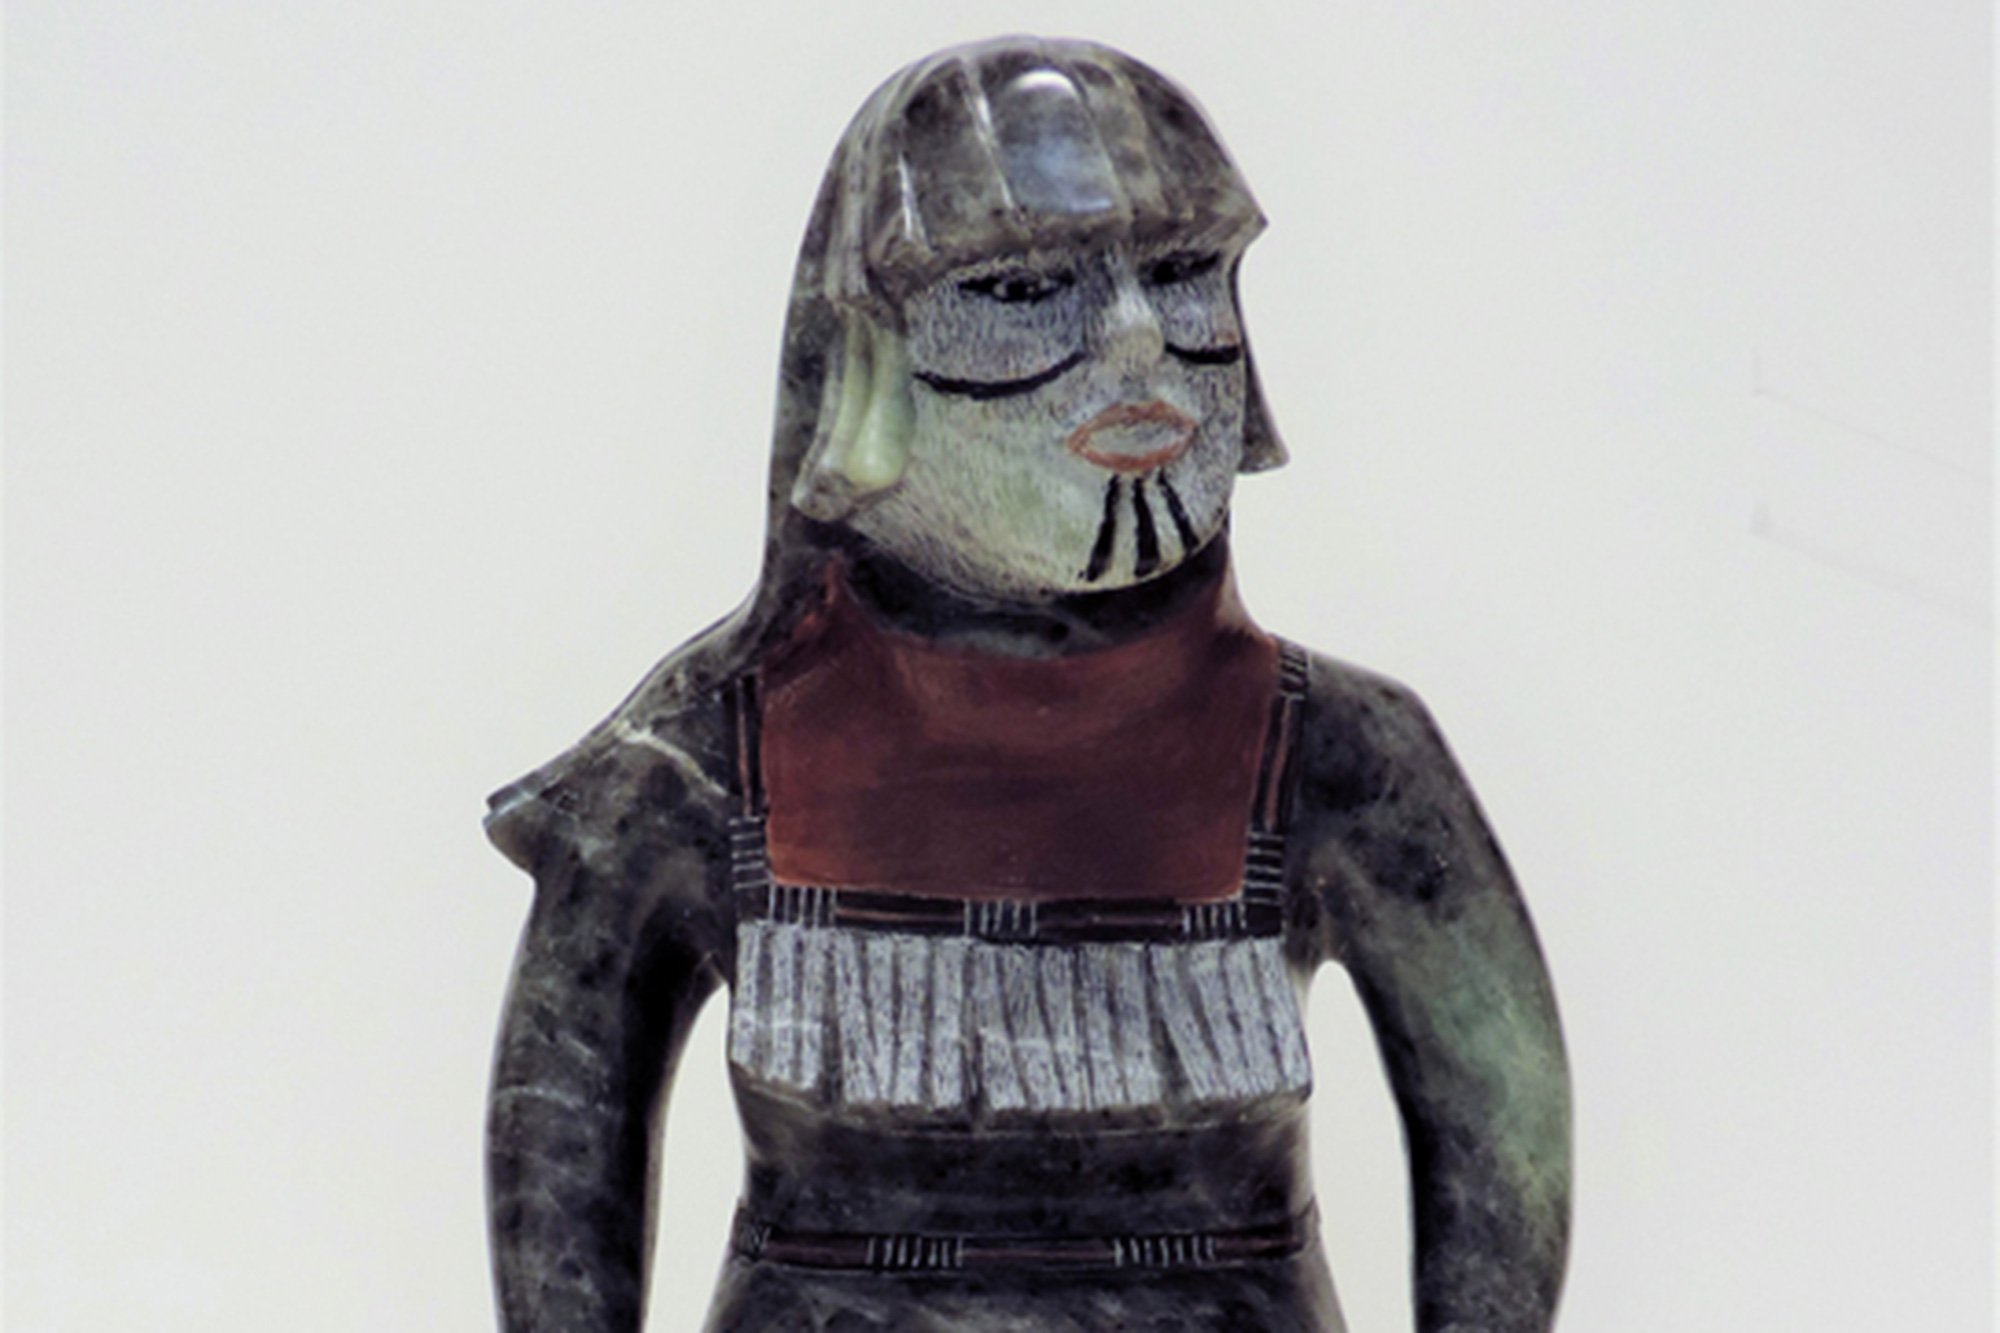 small statue of native figure